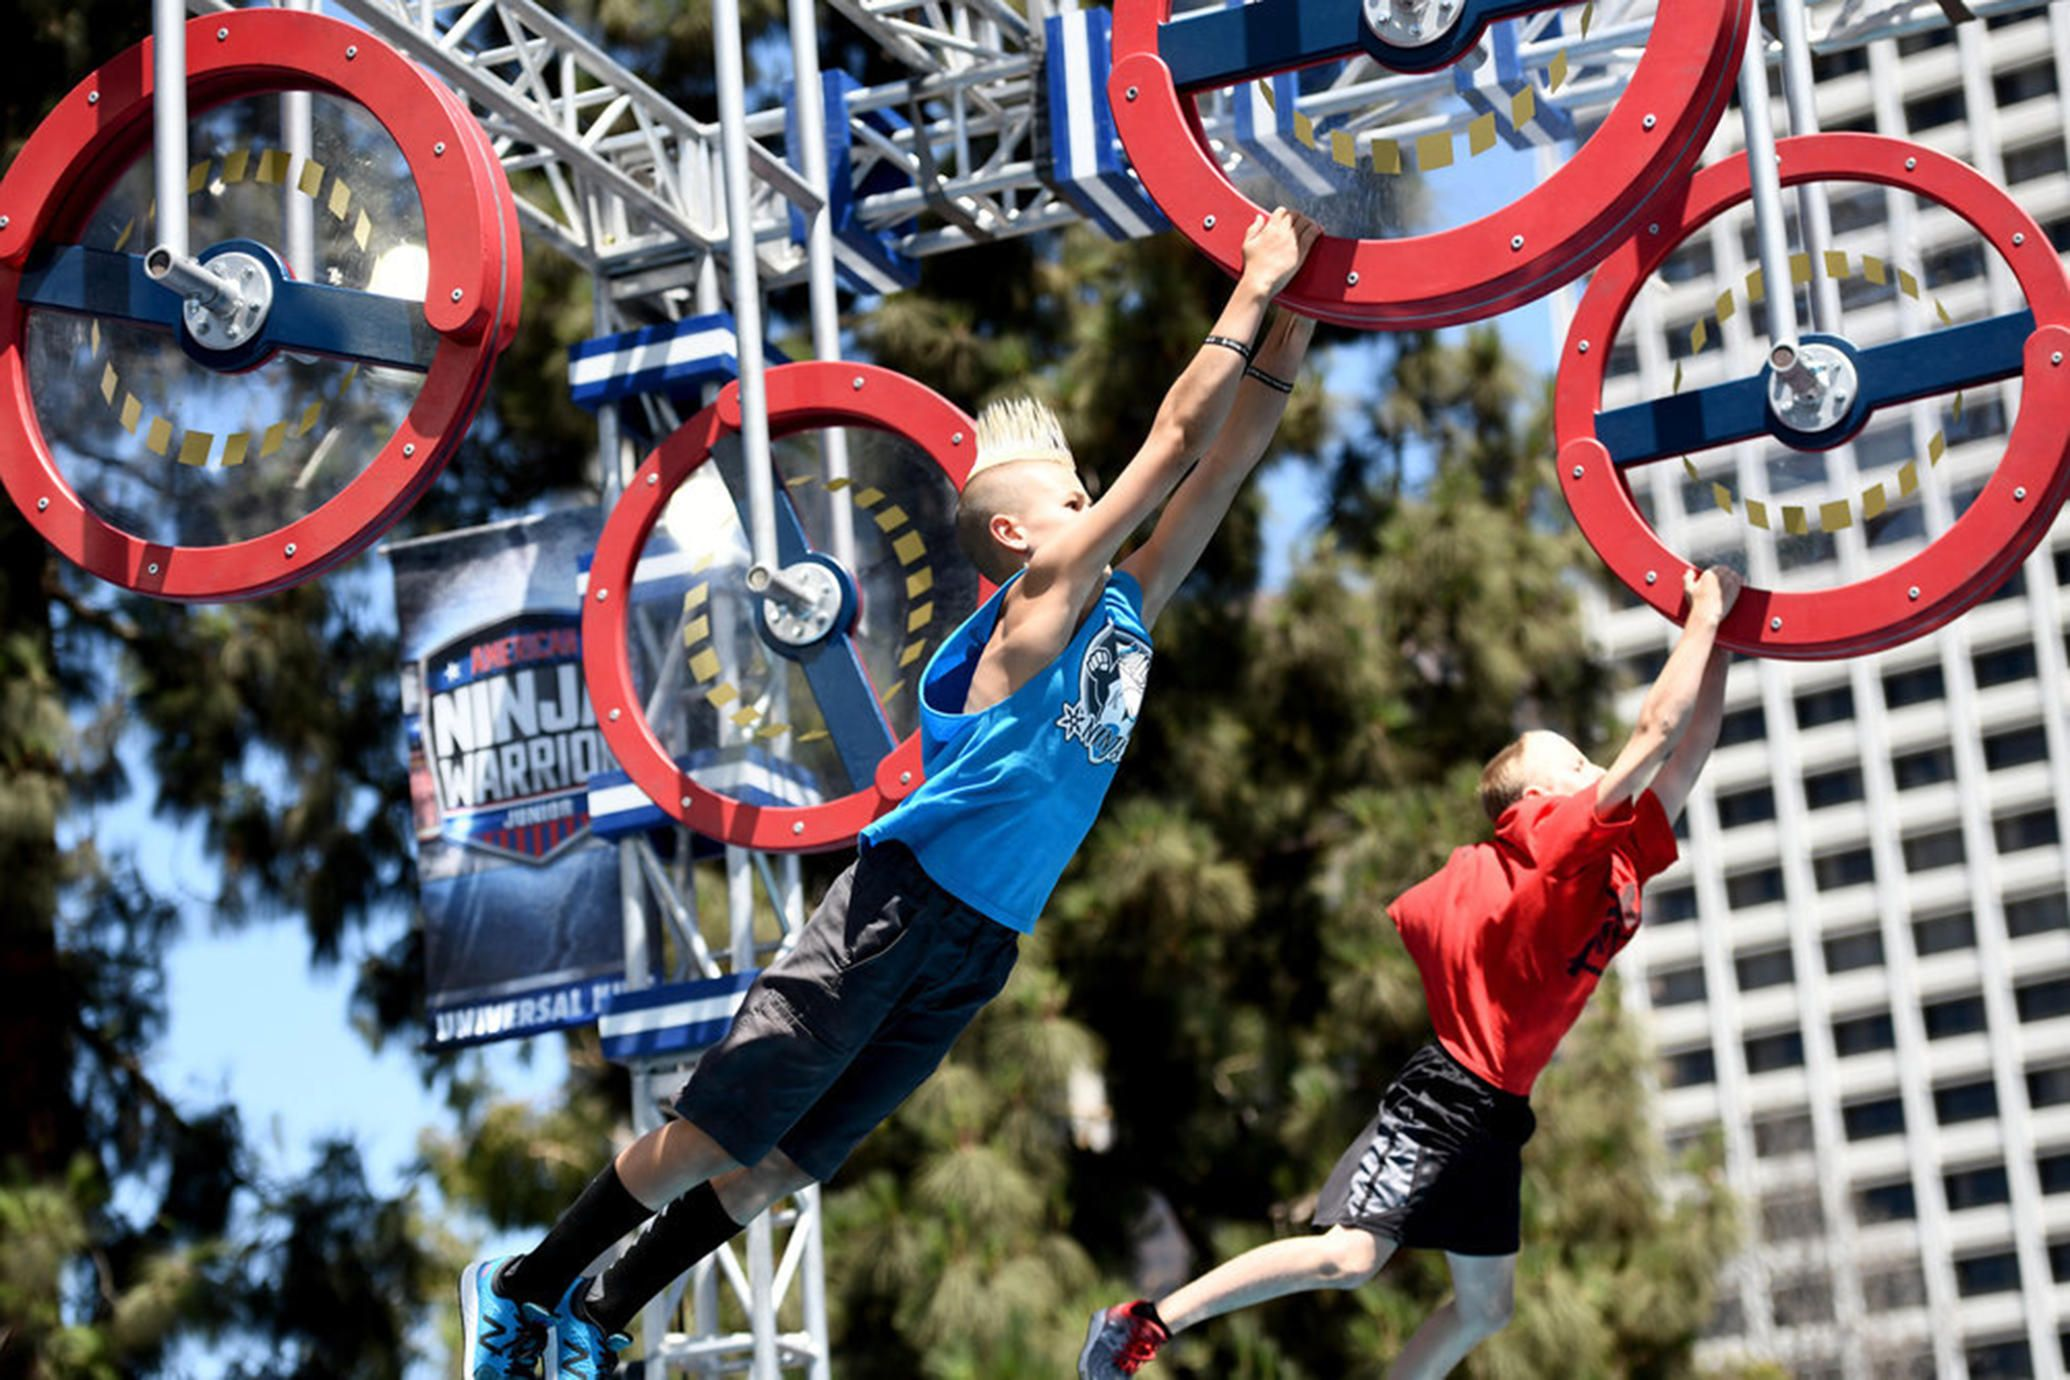 7af464df863a5e2a53ad470601a6e82e - American Ninja Warrior Junior Application 2020